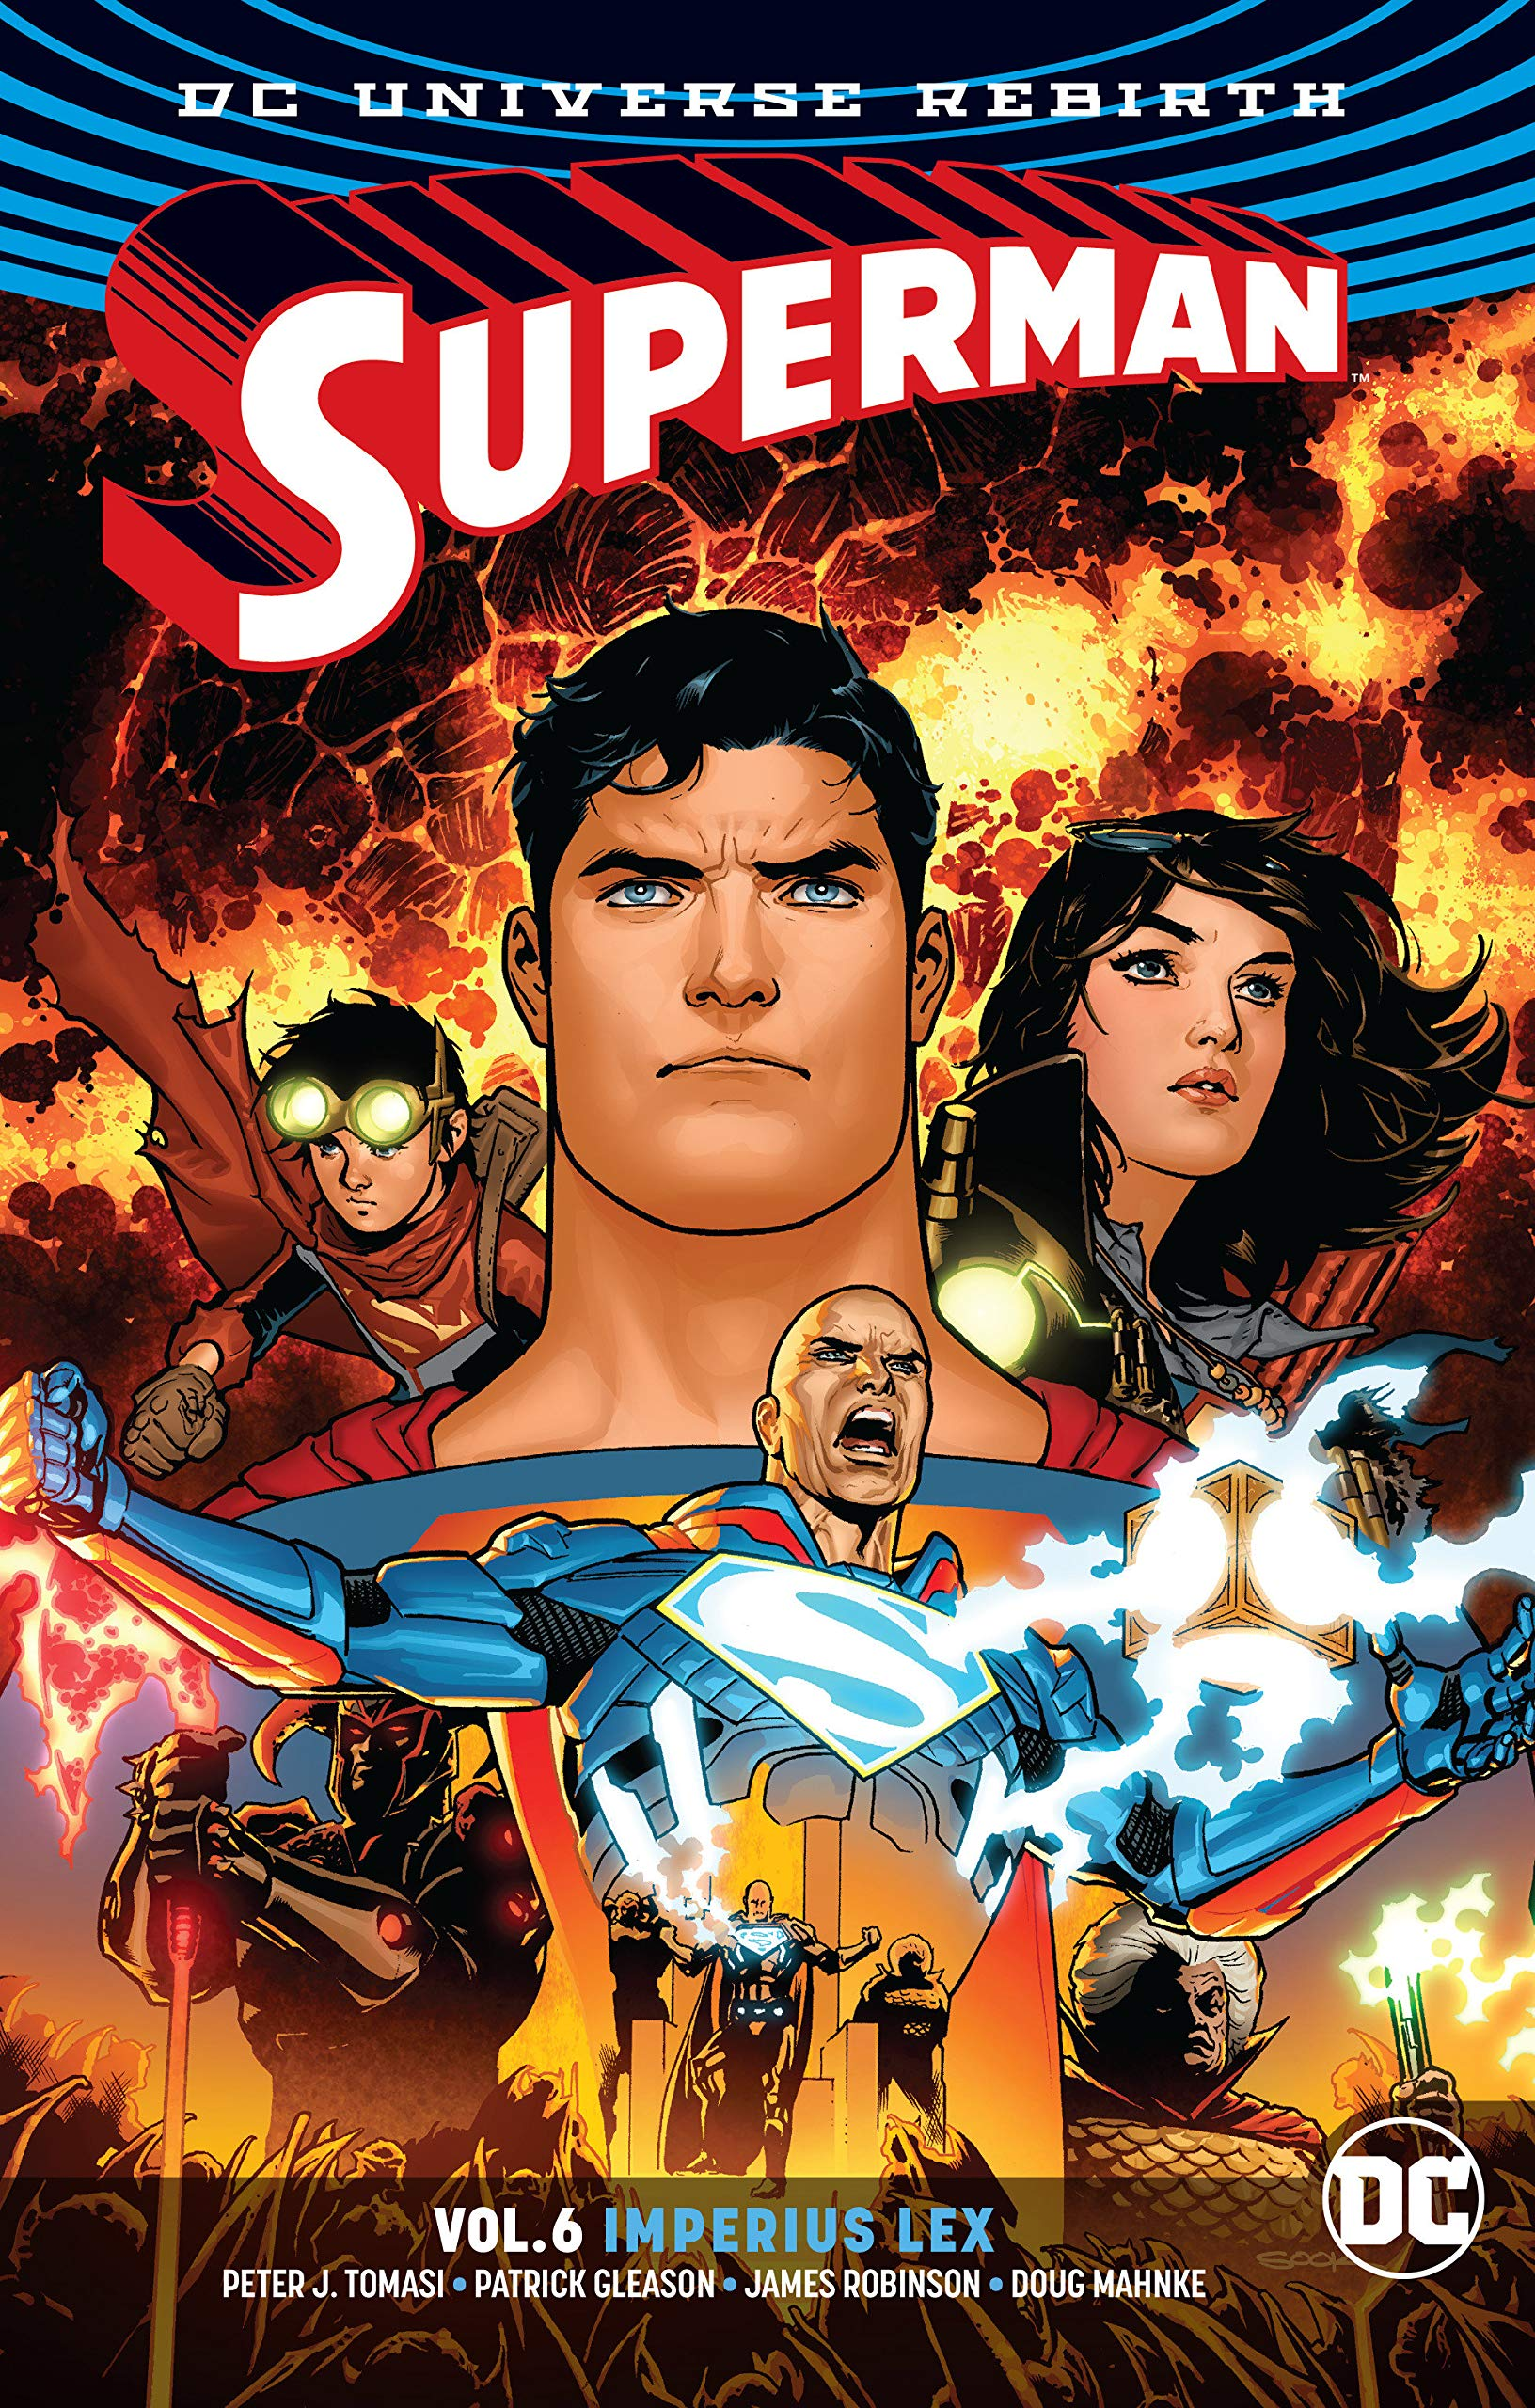 Image result for Superman Vol. 6 Imperius Lex